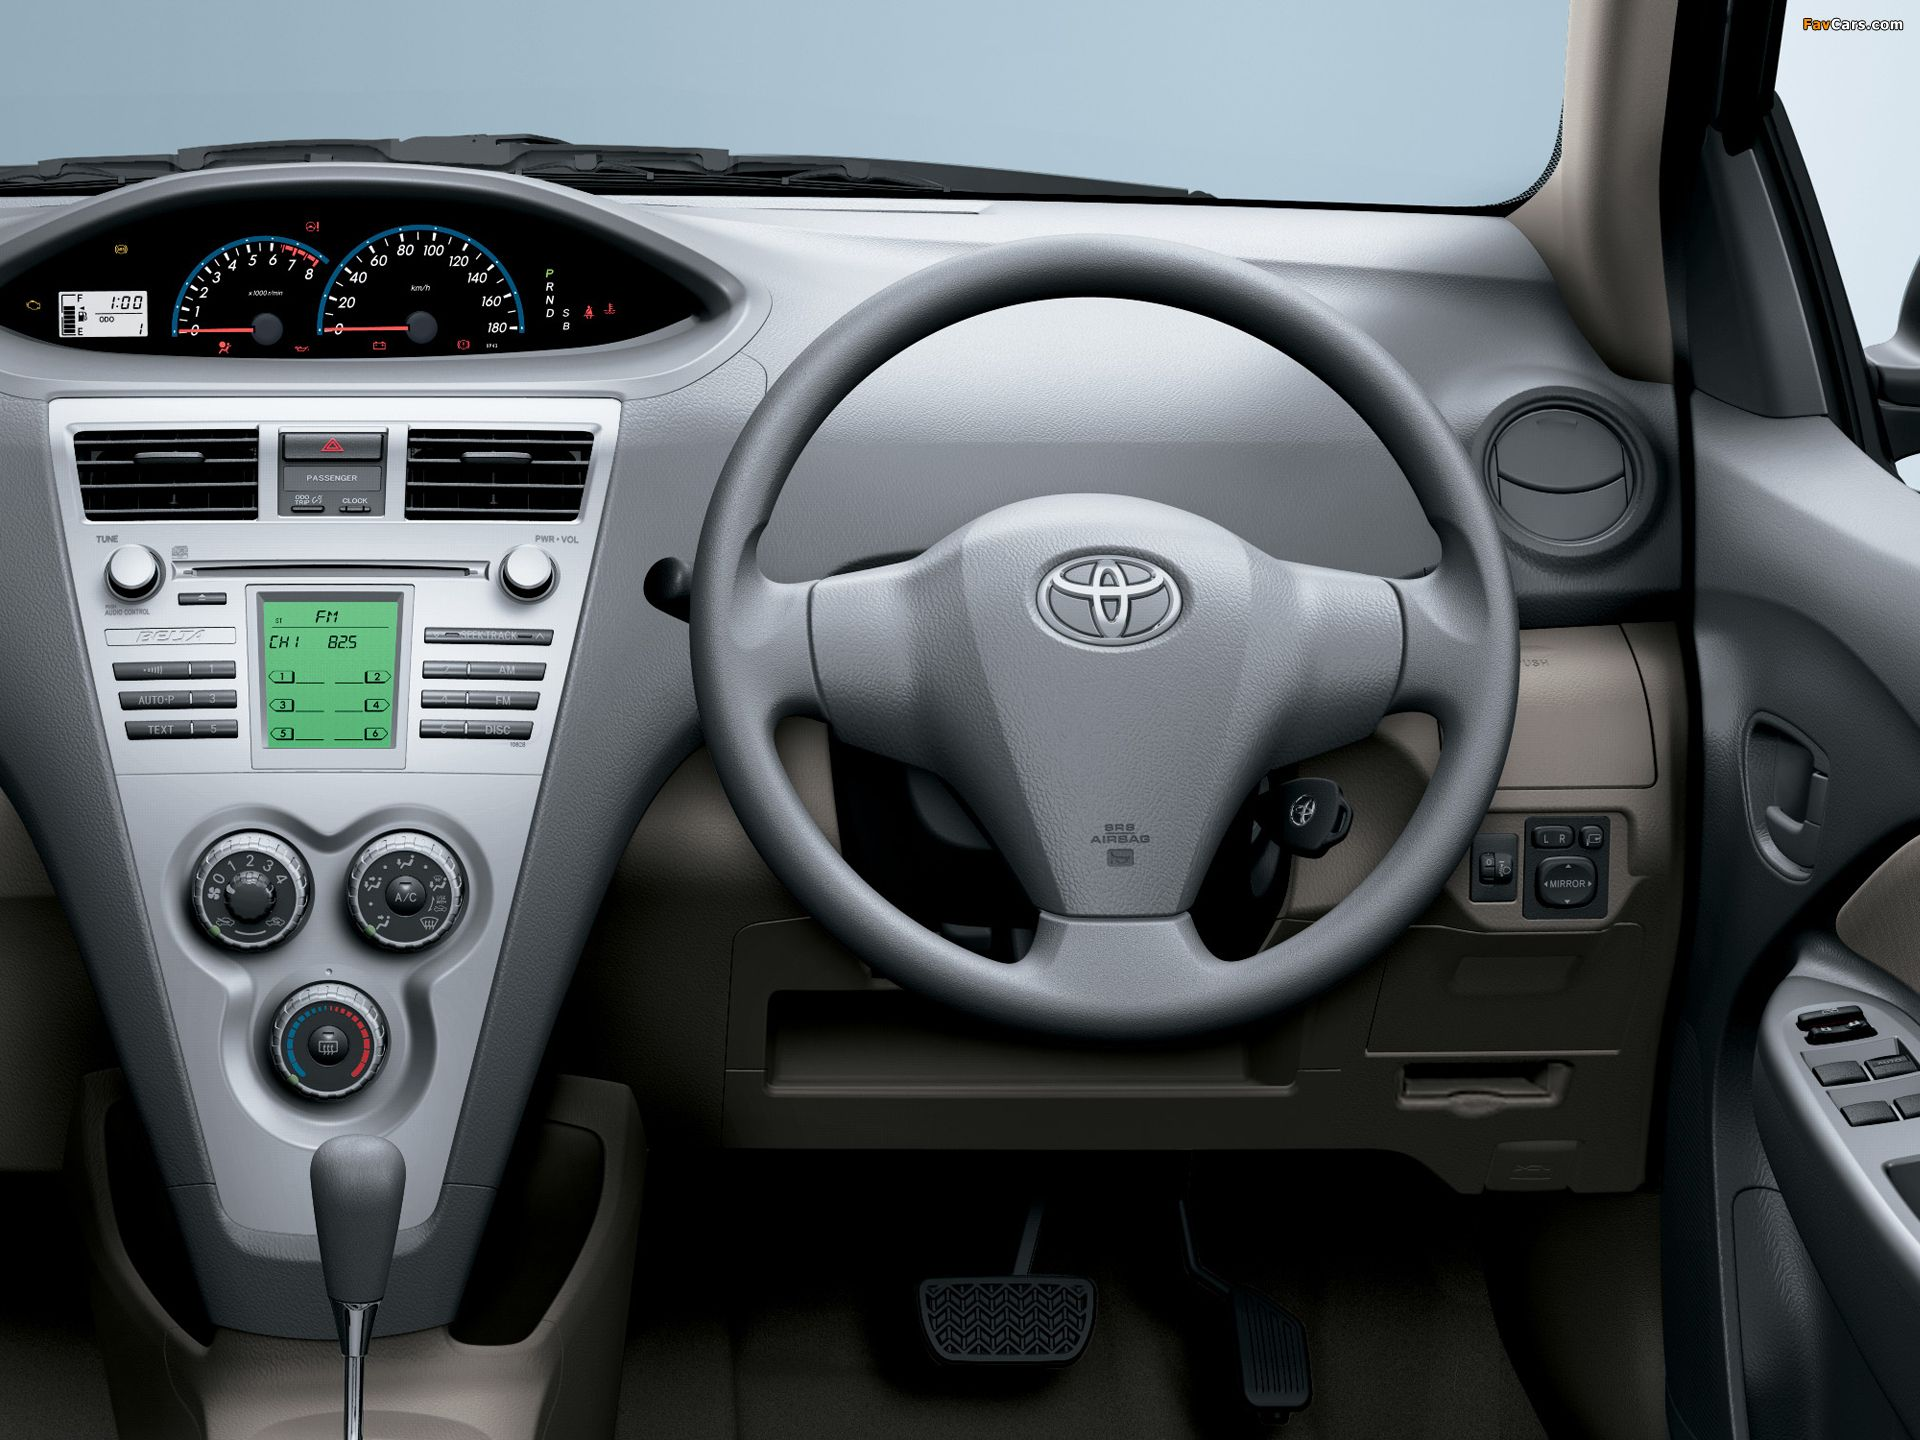 Pictures Of Toyota Belta 2008 09 Toyota Pictures Concept Cars